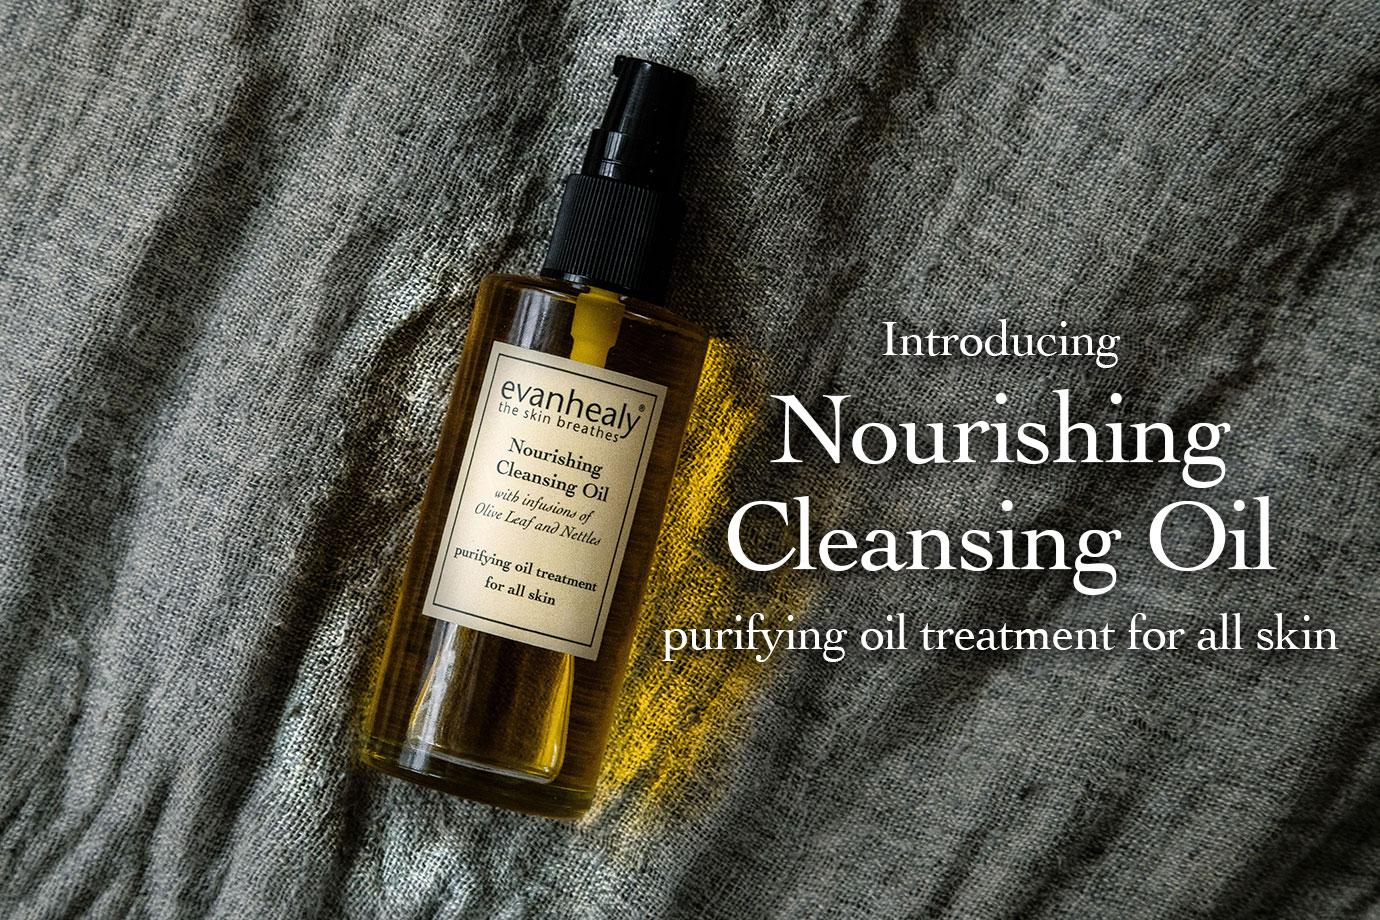 Introducing Nourishing Cleansing Oil – purifying oil treatment for all skin